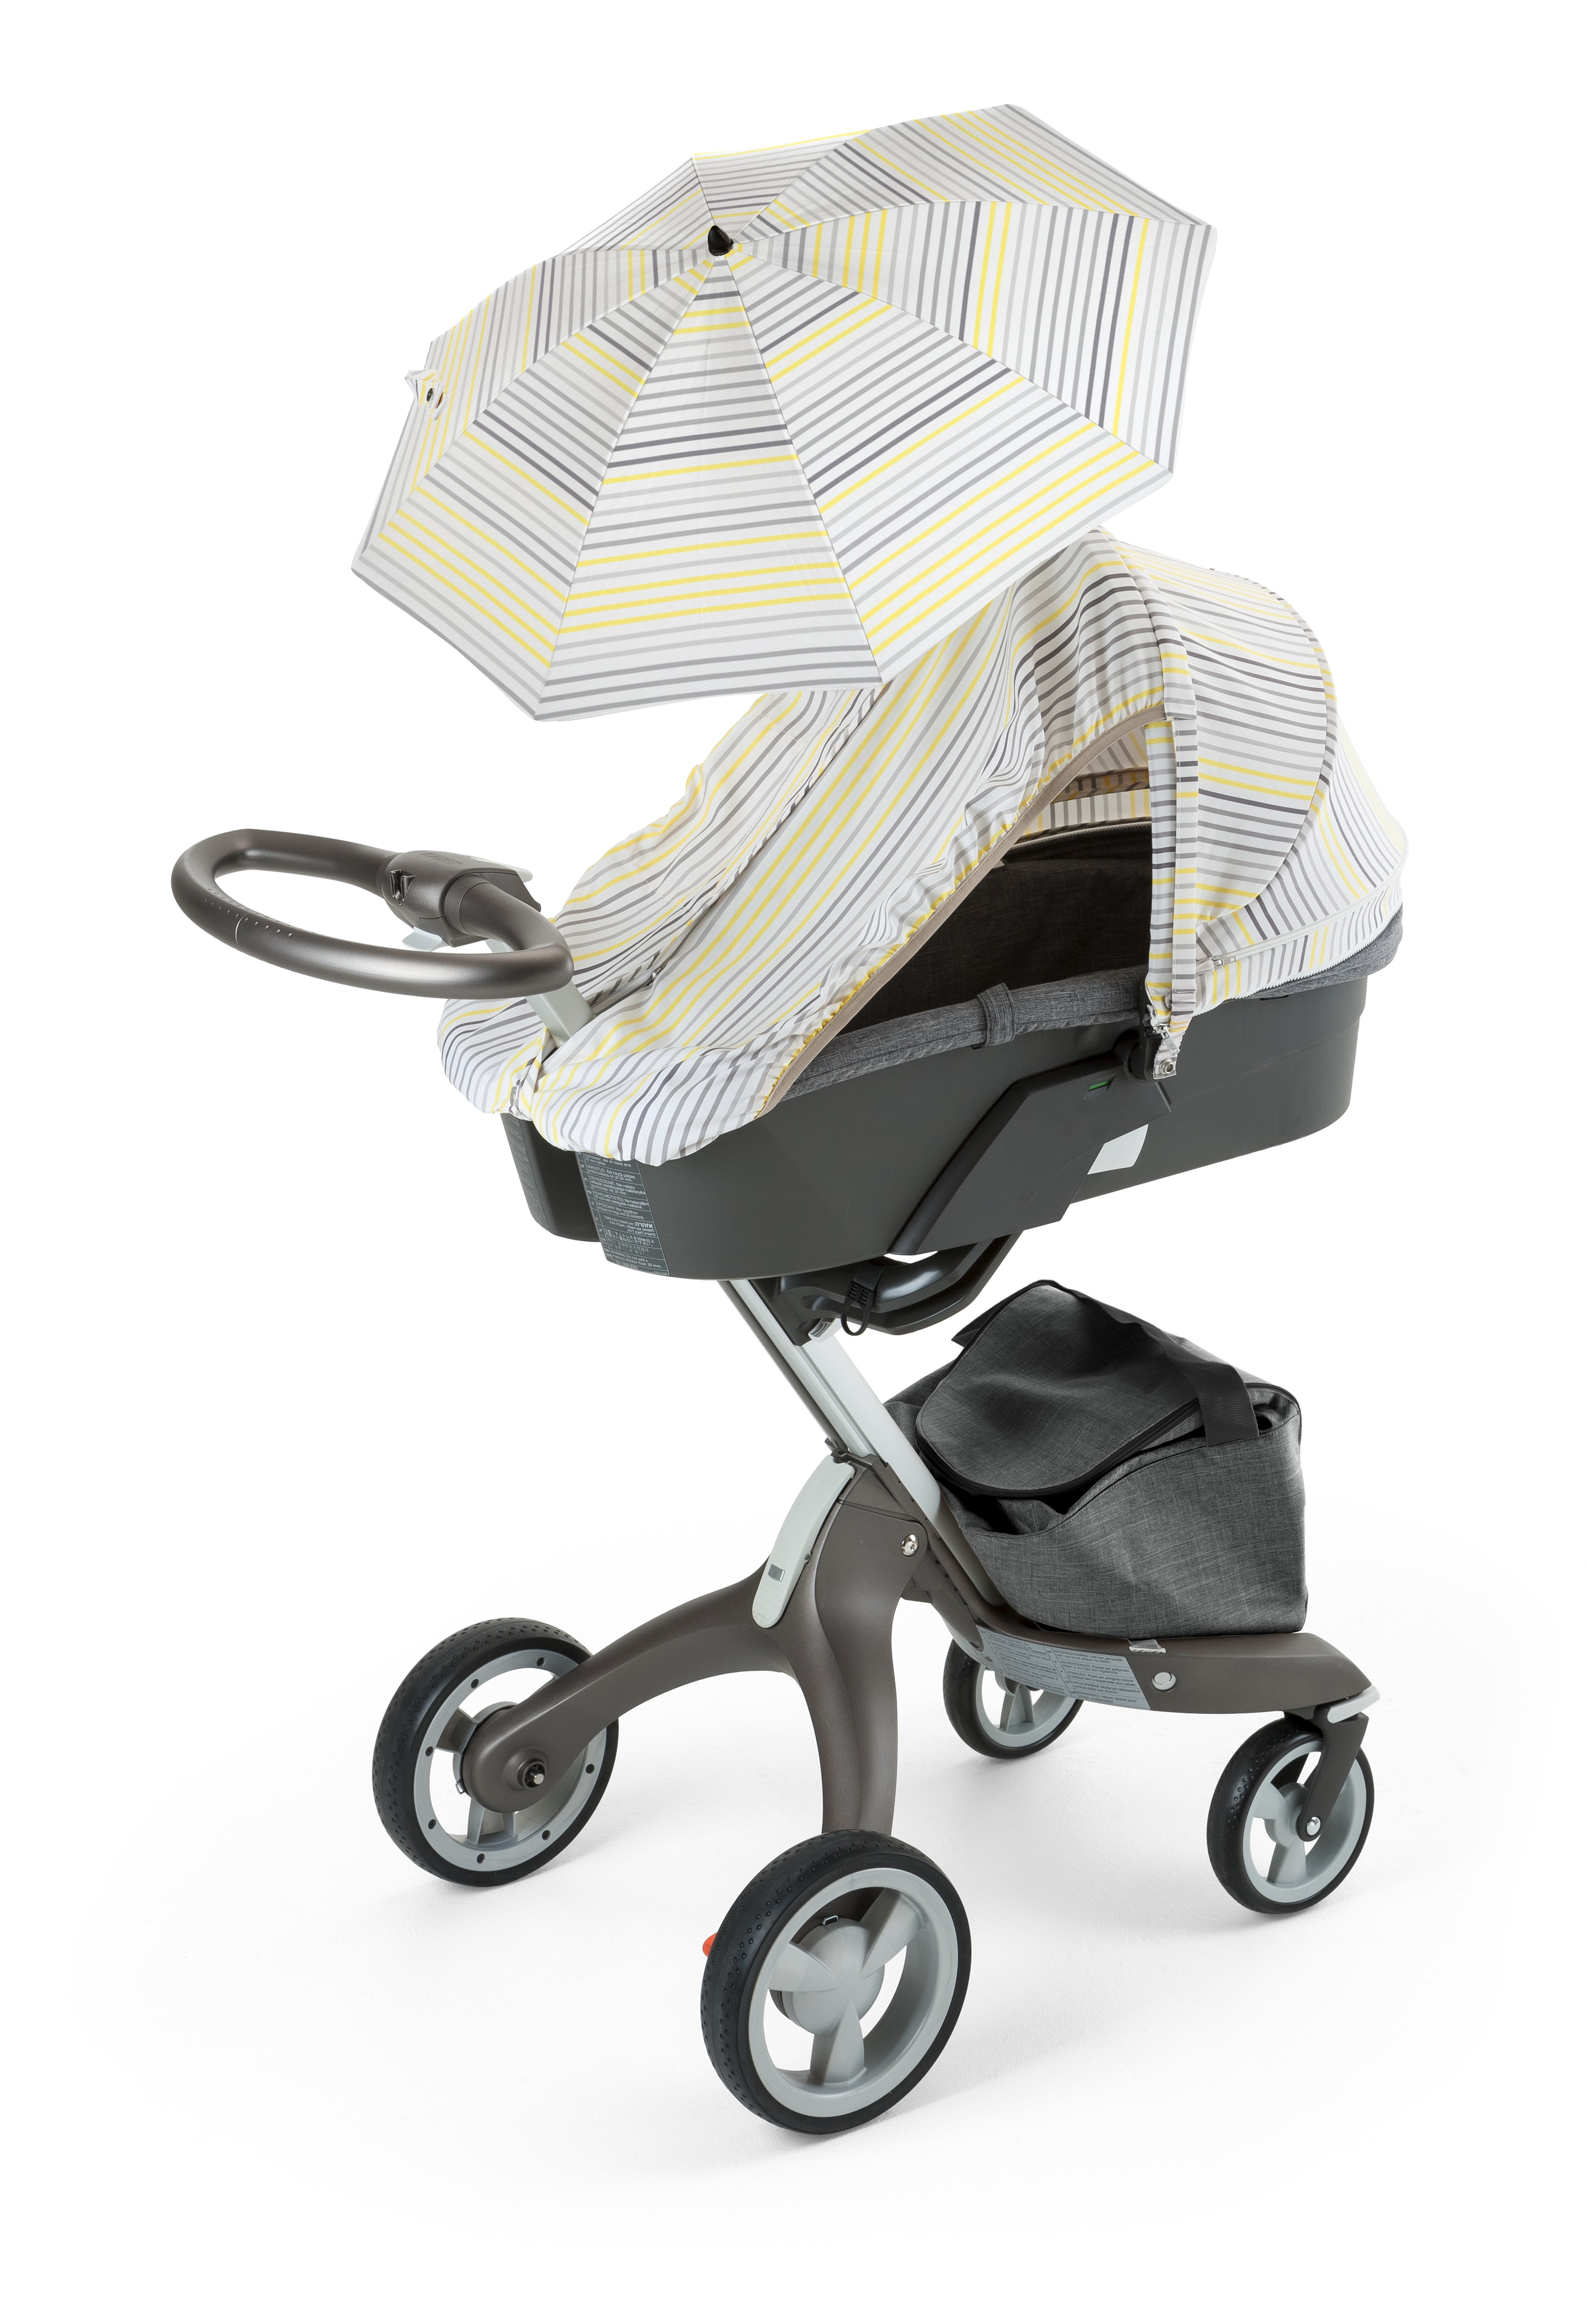 Stokke Xplory Summer kit in yellow